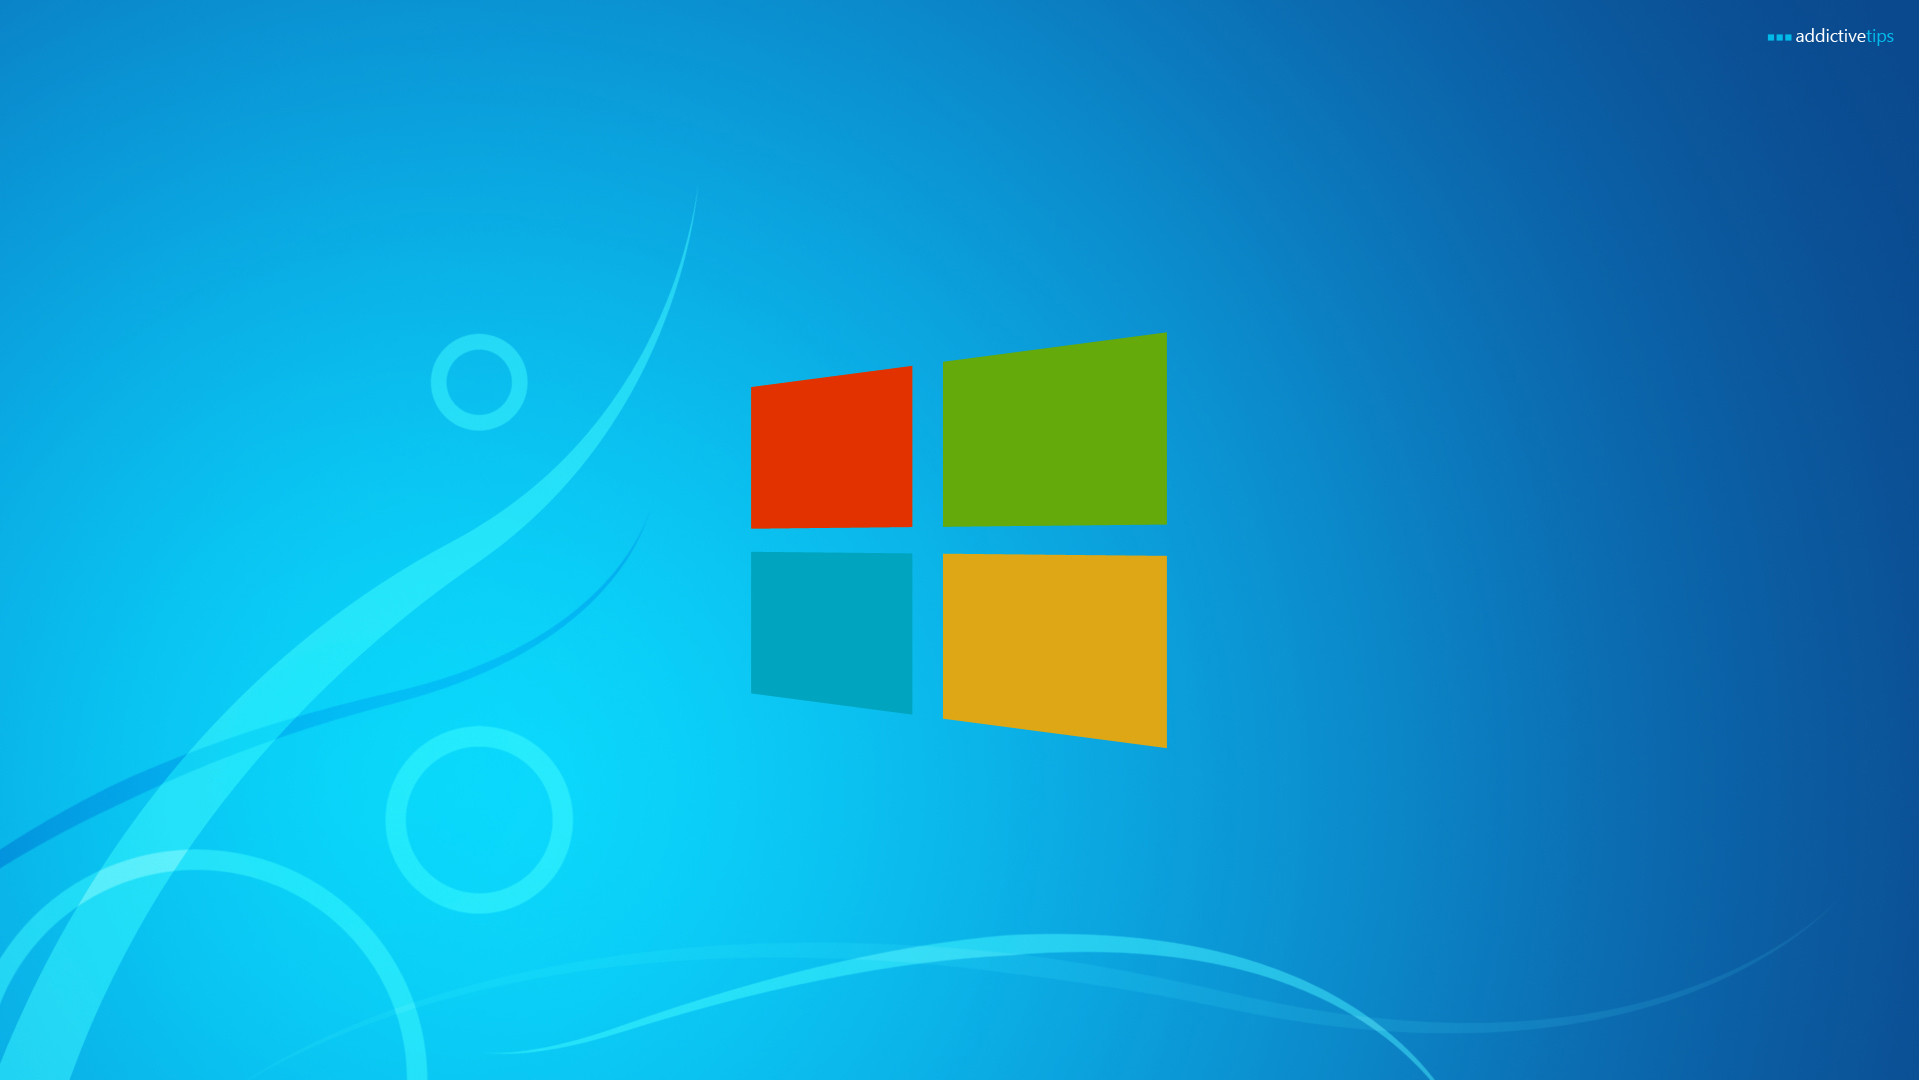 Wallpapers microsoft 60 images 1920x1200 wallpapers microsoft wallpaper voltagebd Images